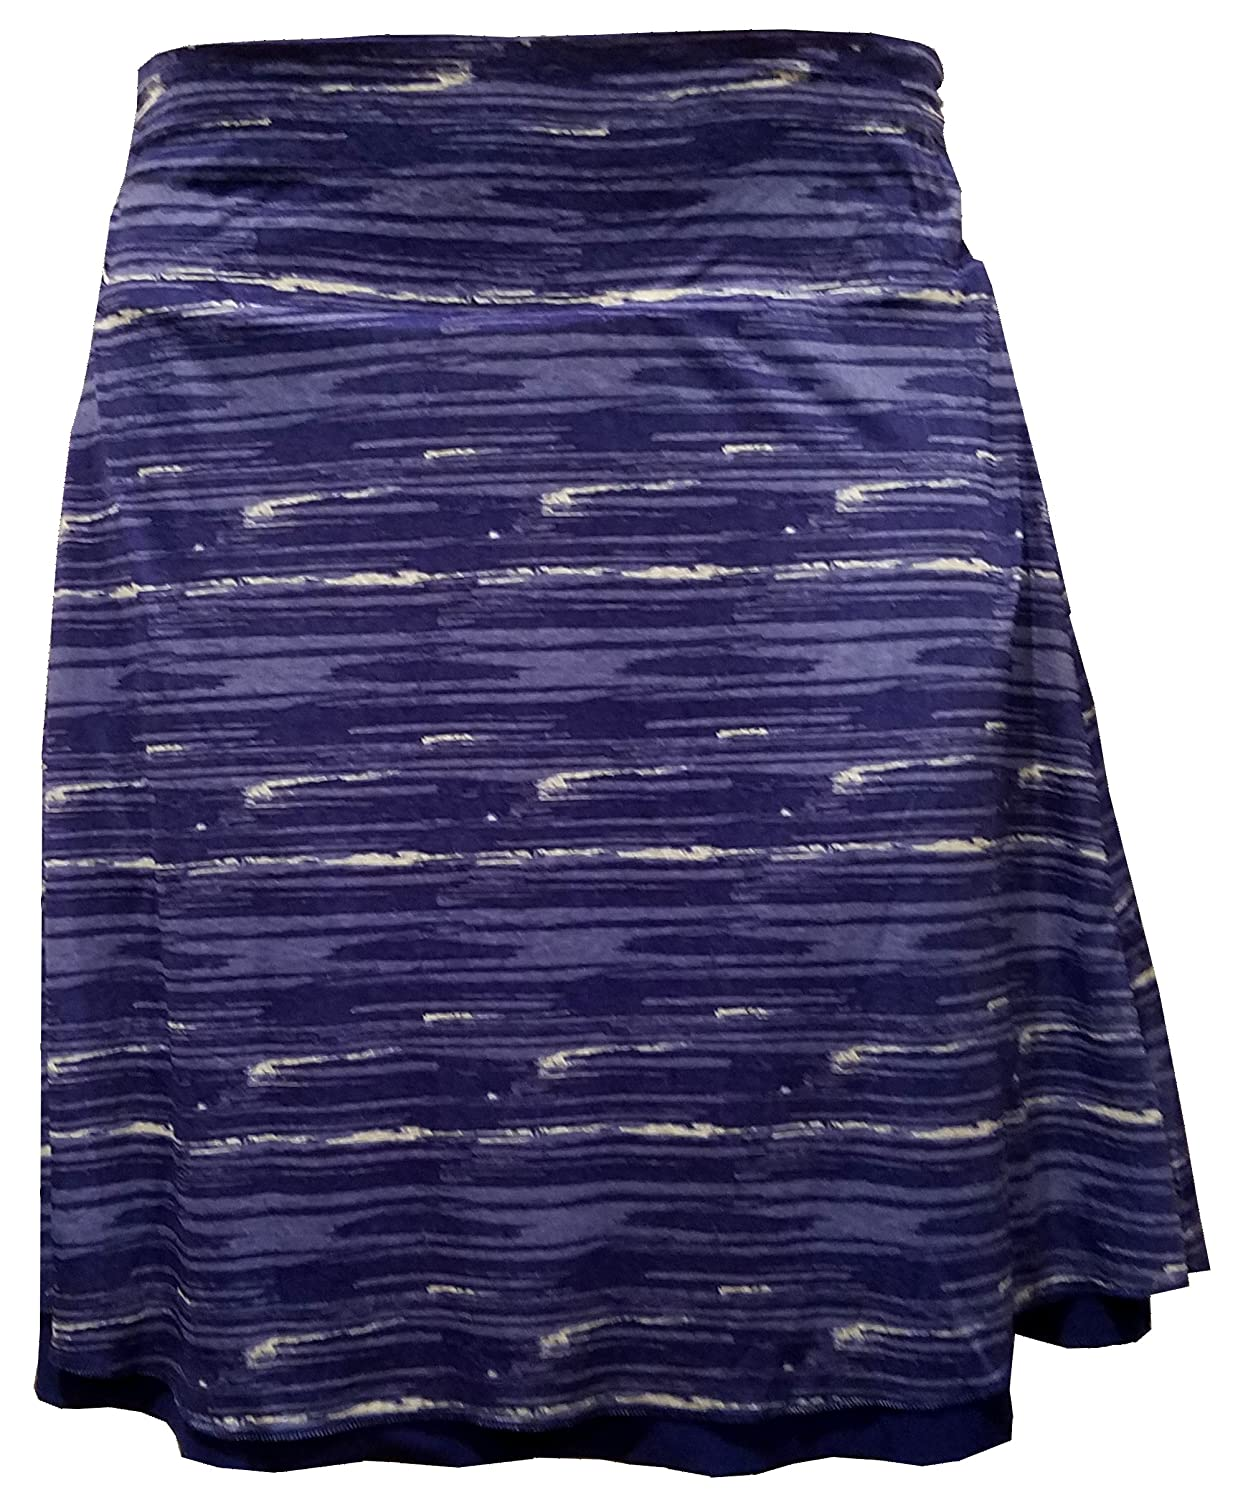 Colorado Clothing Tranquility 21 Print/Solid Reversible Skirt